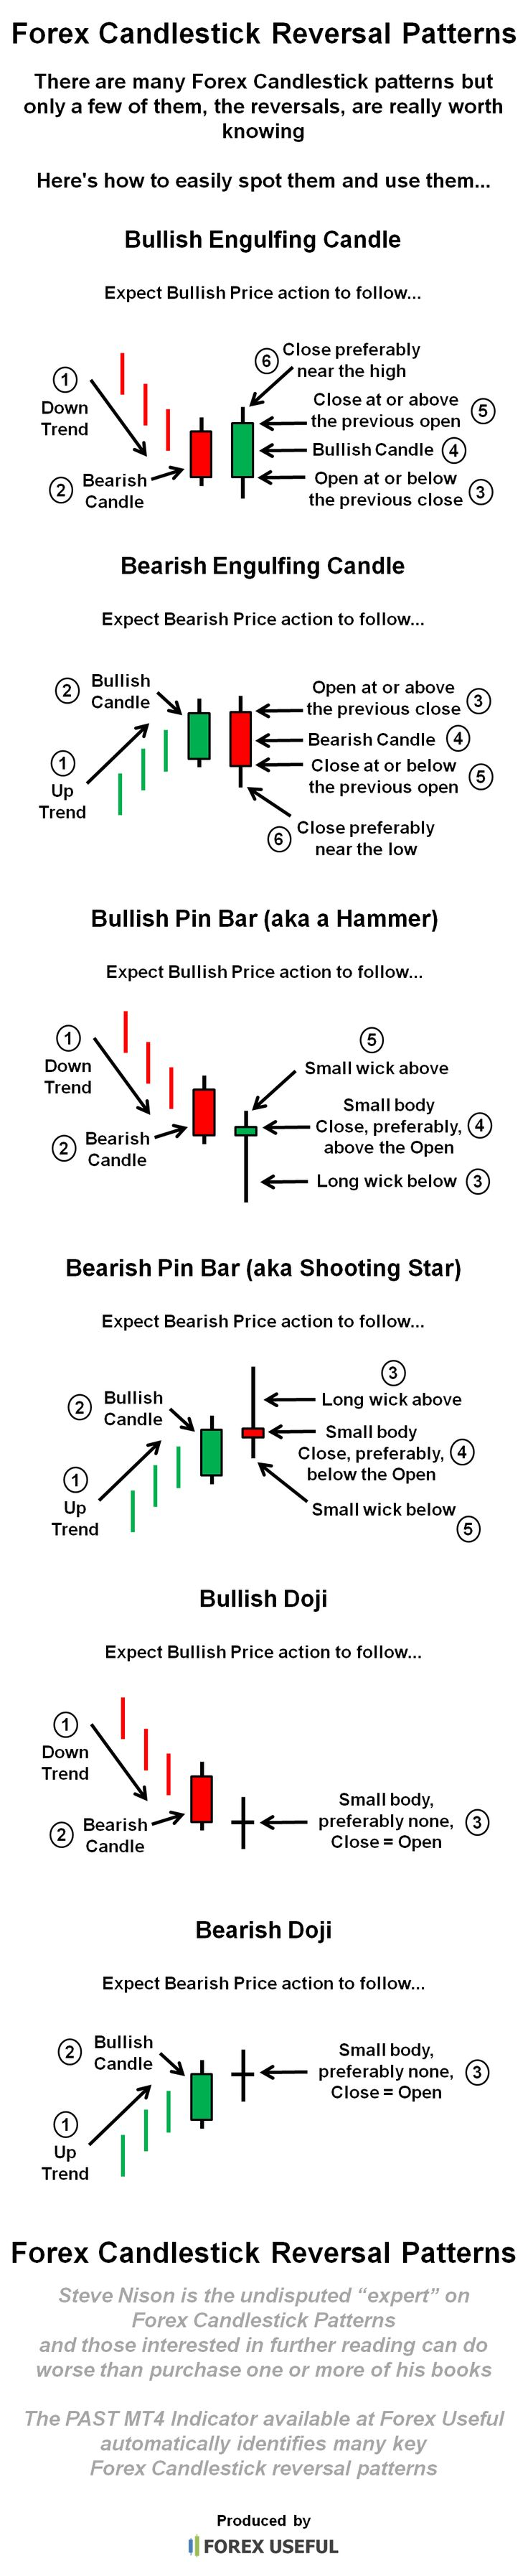 There are many Forex Candlestick patterns but only a few of them, the reversals, are really worth knowing, here's how to easily spot them and use them...